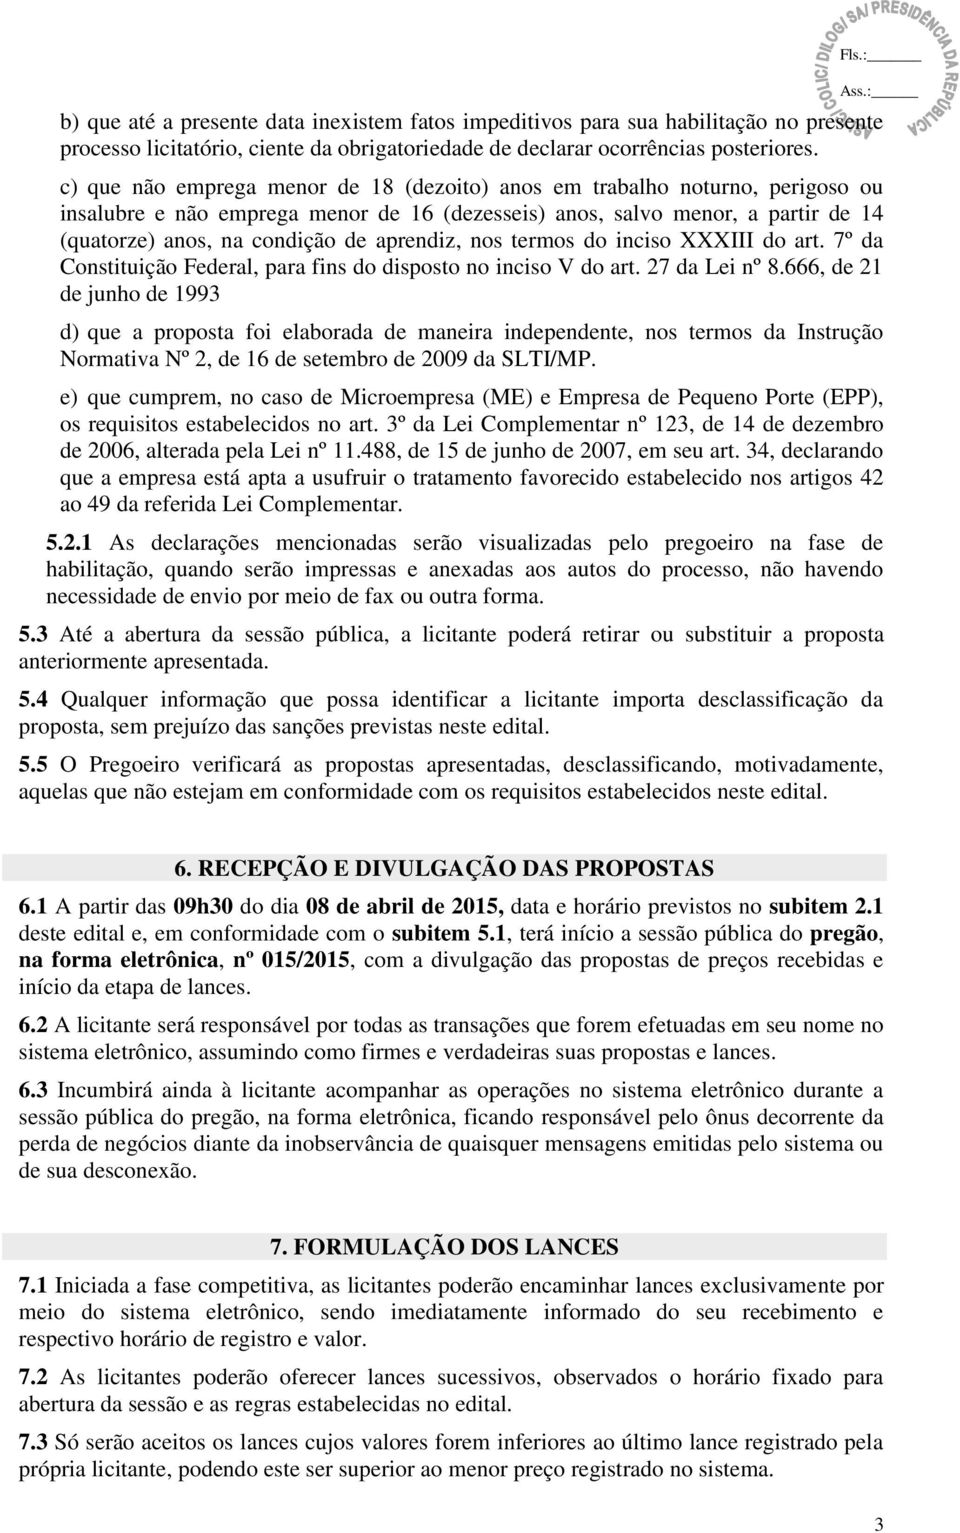 aprendiz, nos termos do inciso XXXIII do art. 7º da Constituição Federal, para fins do disposto no inciso V do art. 27 da Lei nº 8.